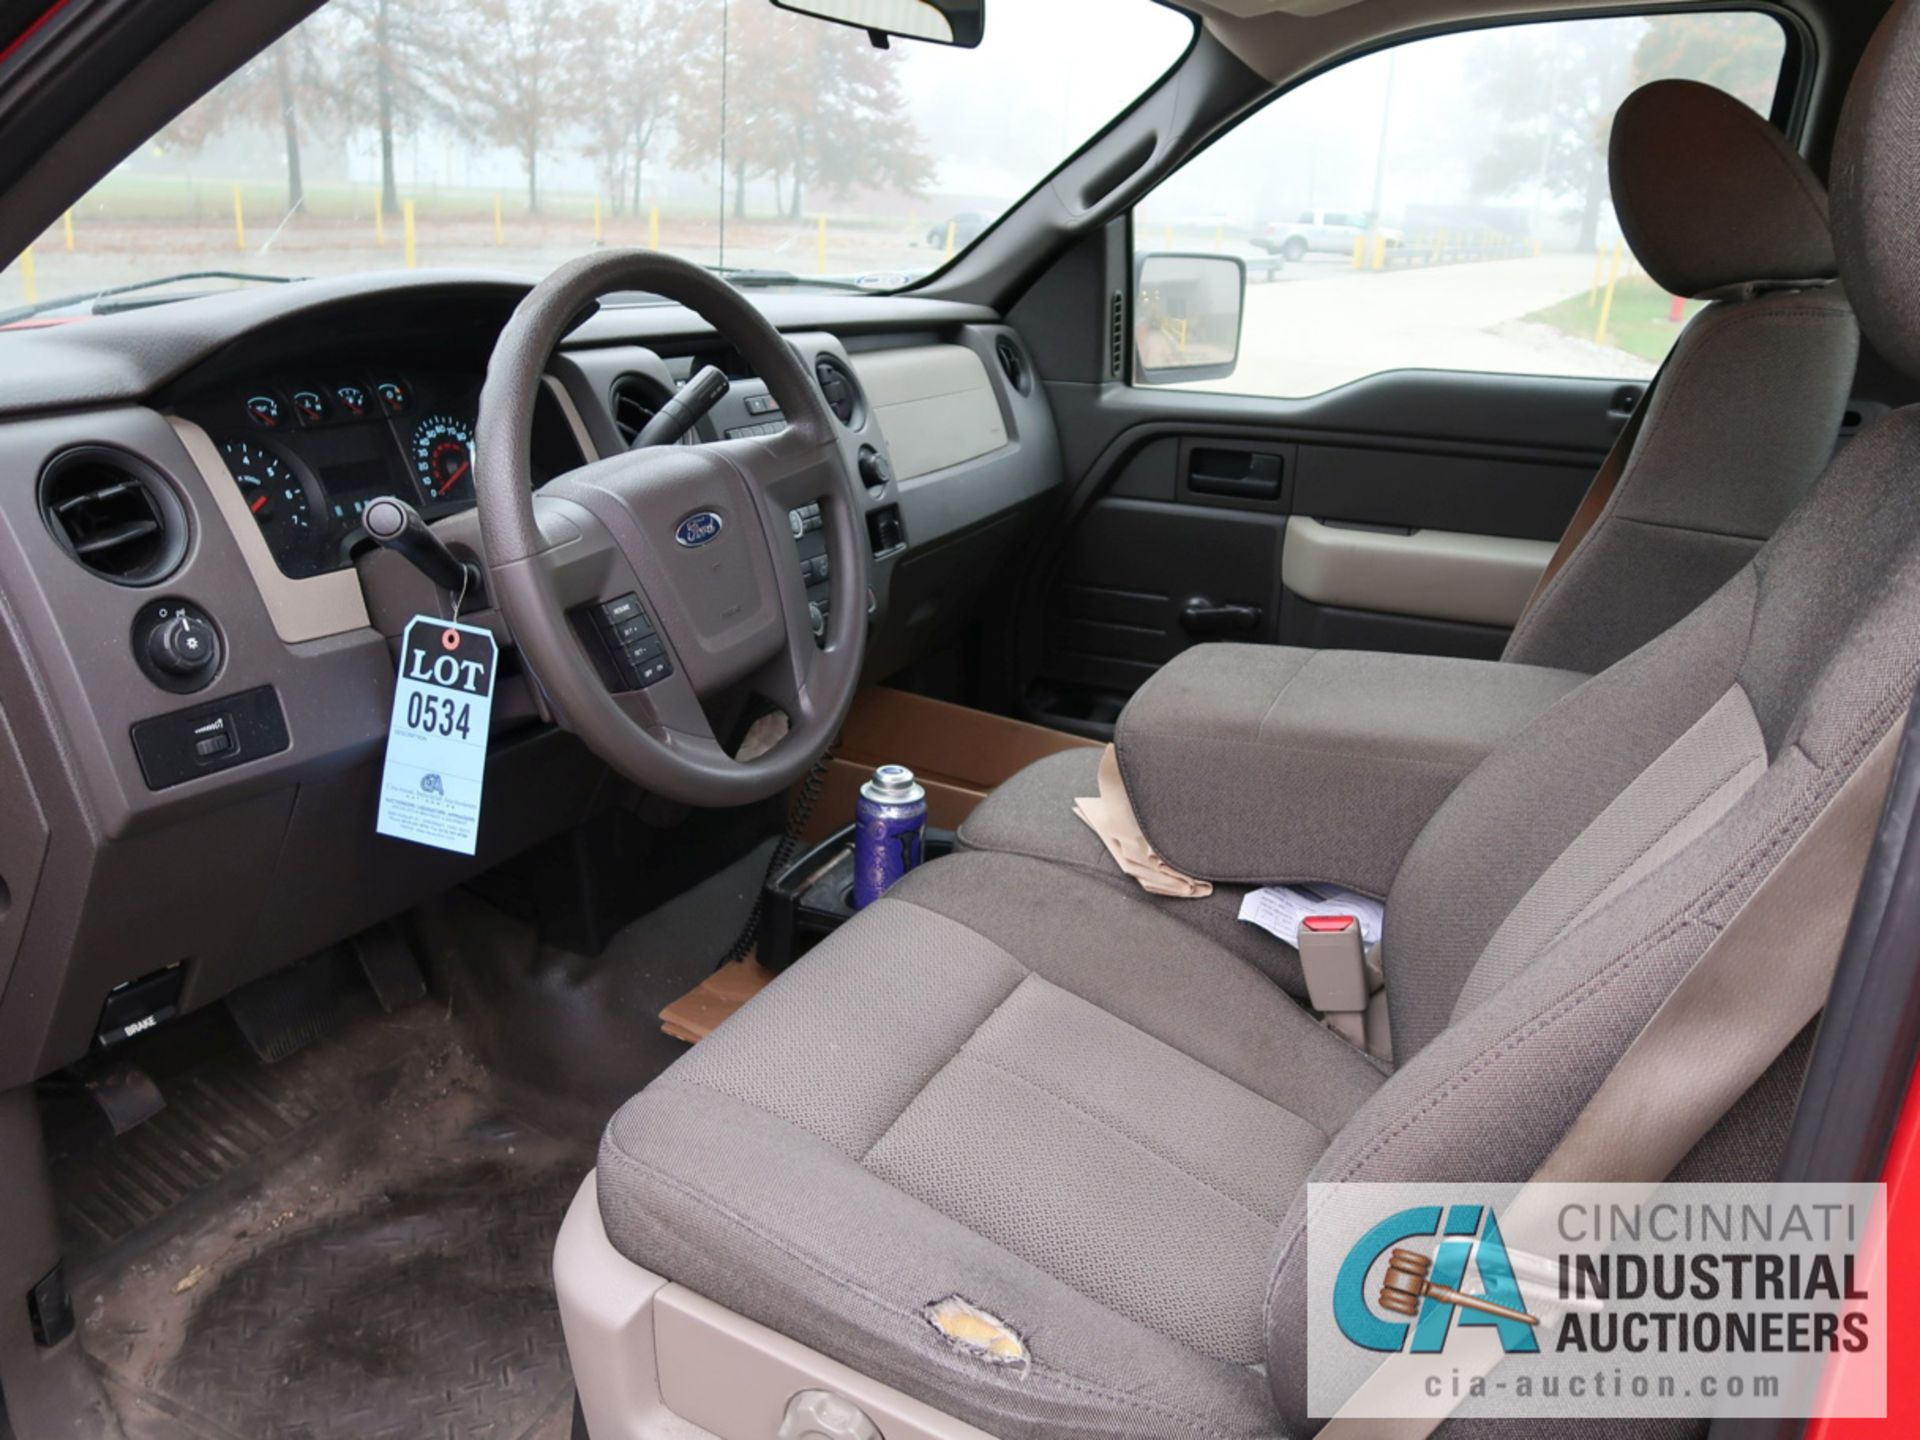 Lot 534 - 2010 FORD F-150 PICK UP TRUCK; VIN # 1FTMF1CW3AKE02719, 4.62 TRITON GAS ENGINE, AUTOMATIC